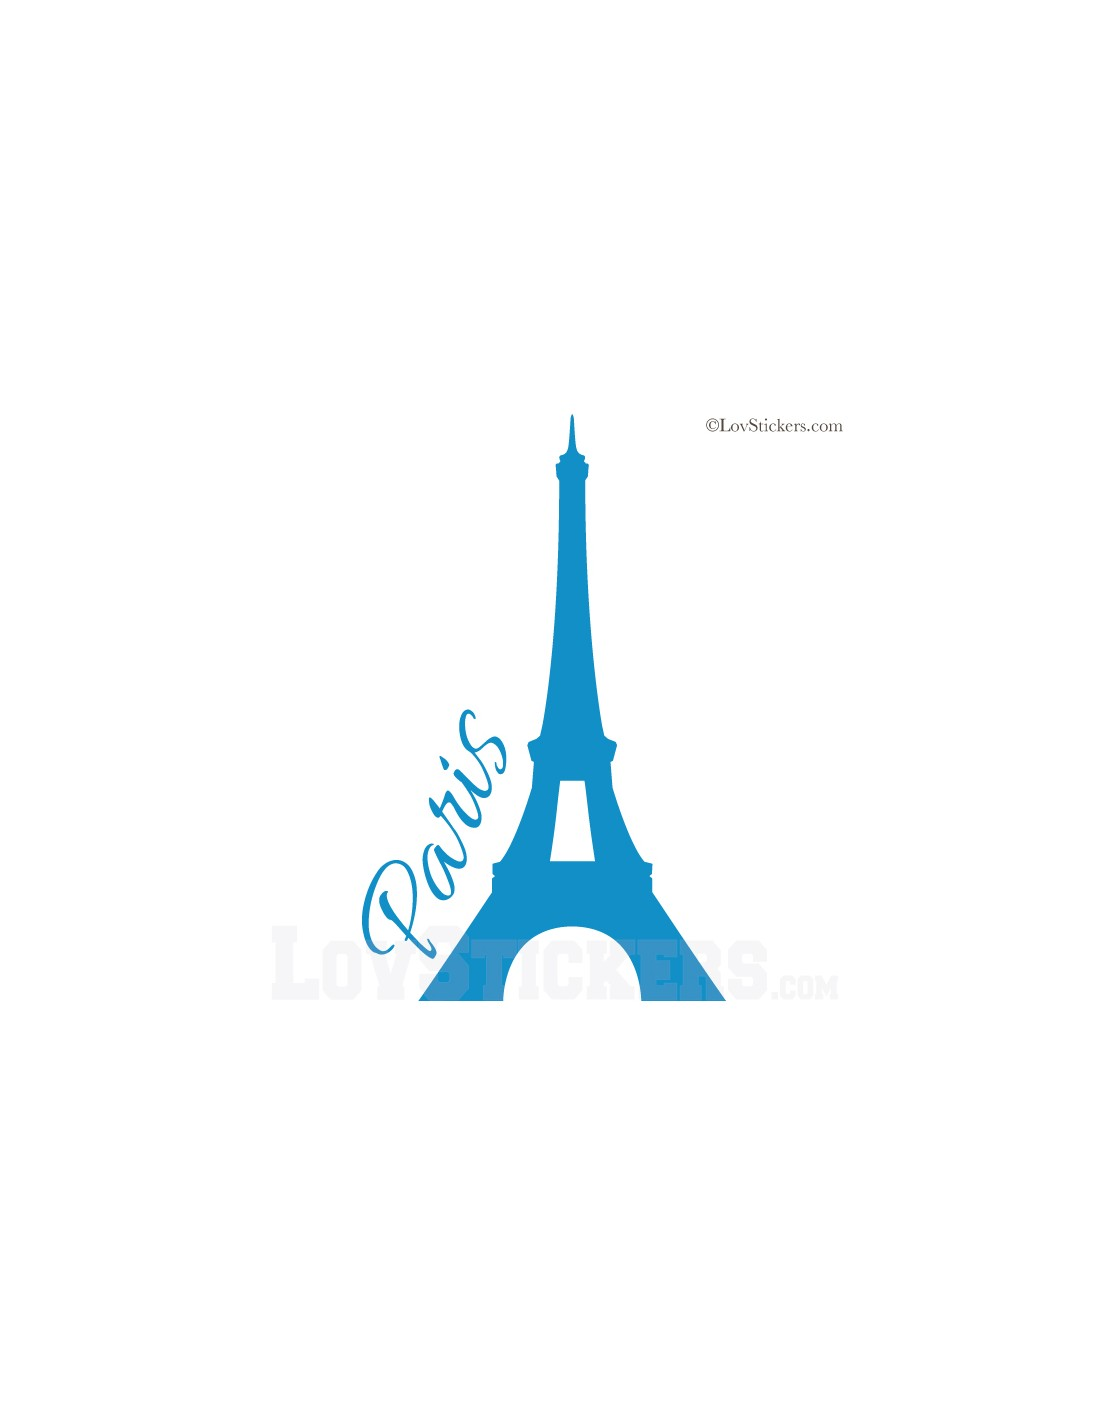 Sticker de d coration paris tour eiffel for Stickers tour eiffel chambre